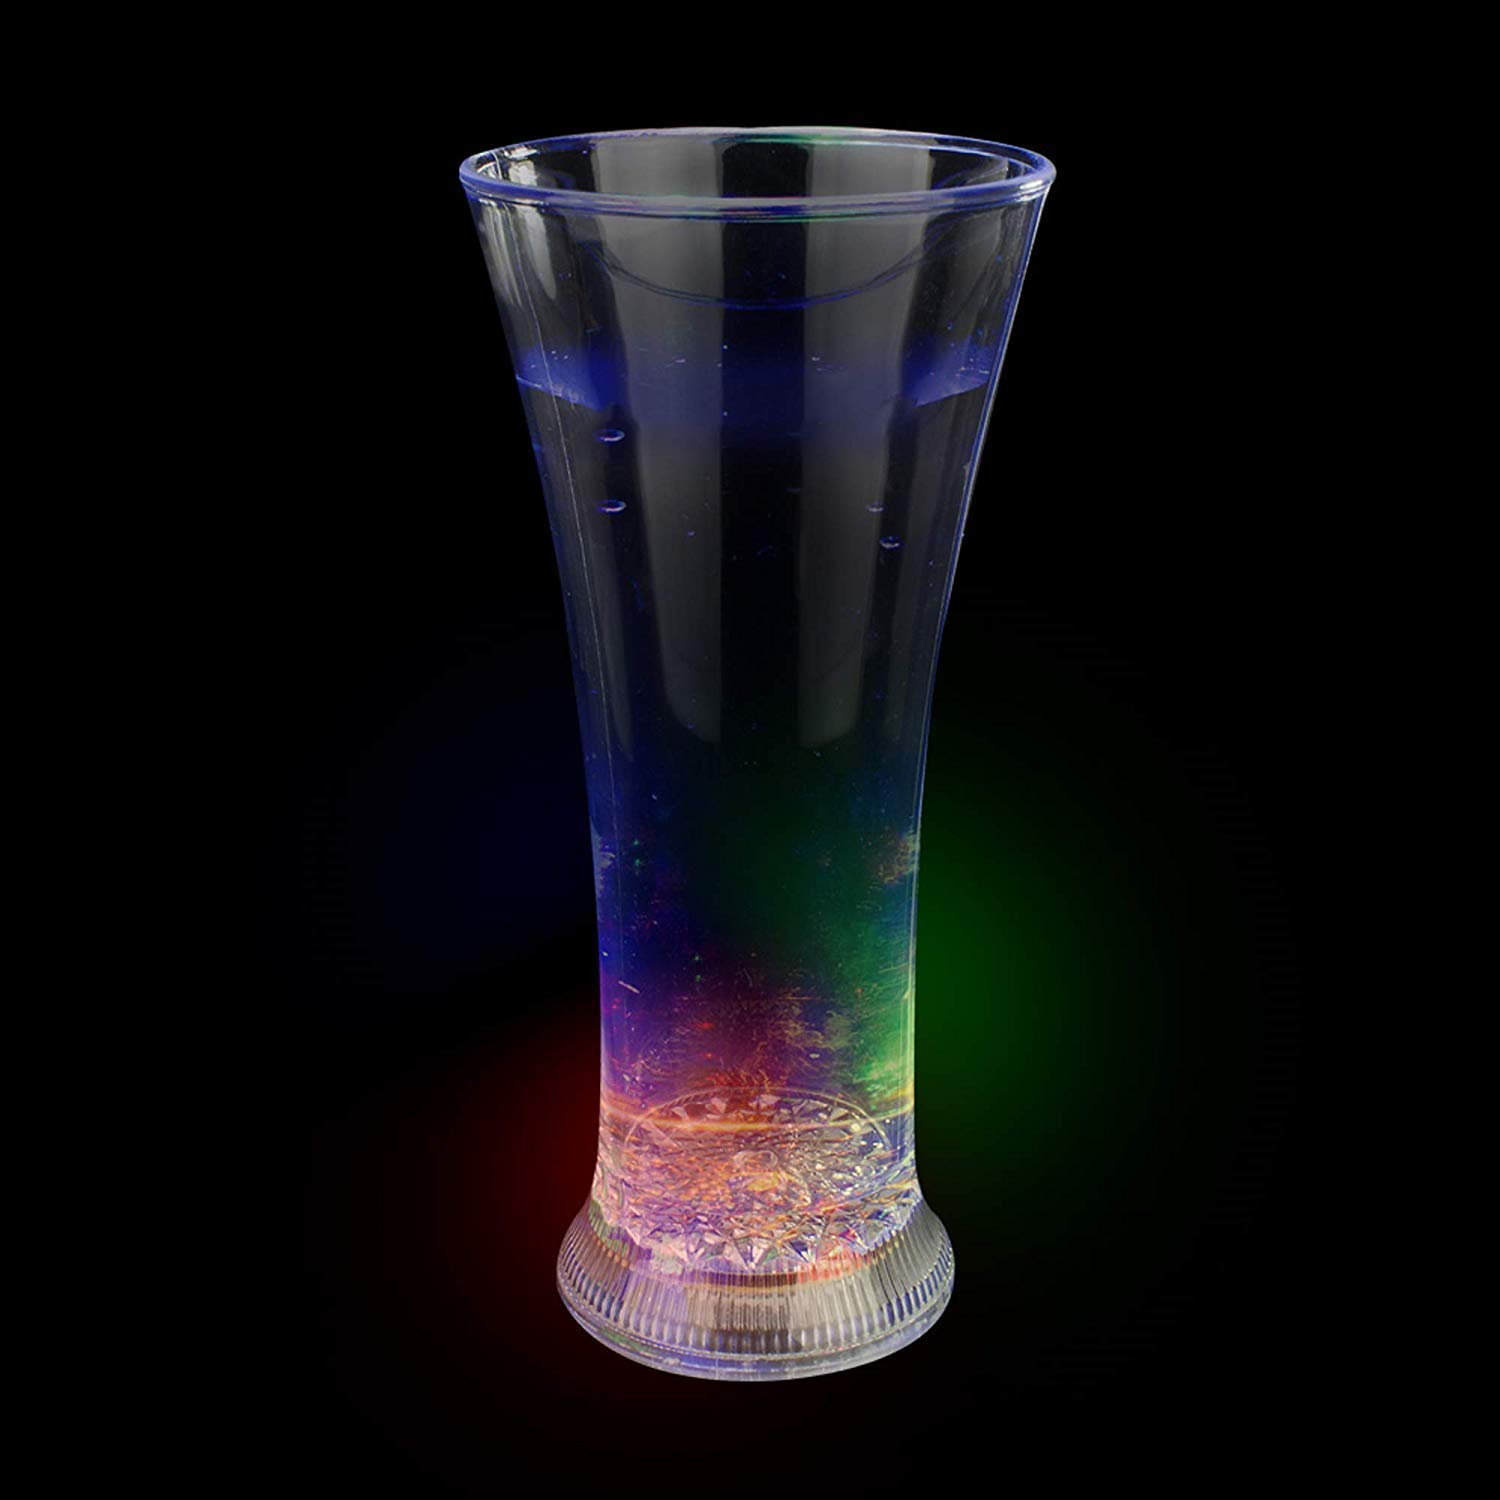 AD004 Light Up Cup LED Cup 6 Pcs 12 Oz Multicolor LED Slender Pilsner Glass Party Cups Fun Central Glow in the Dark Cups